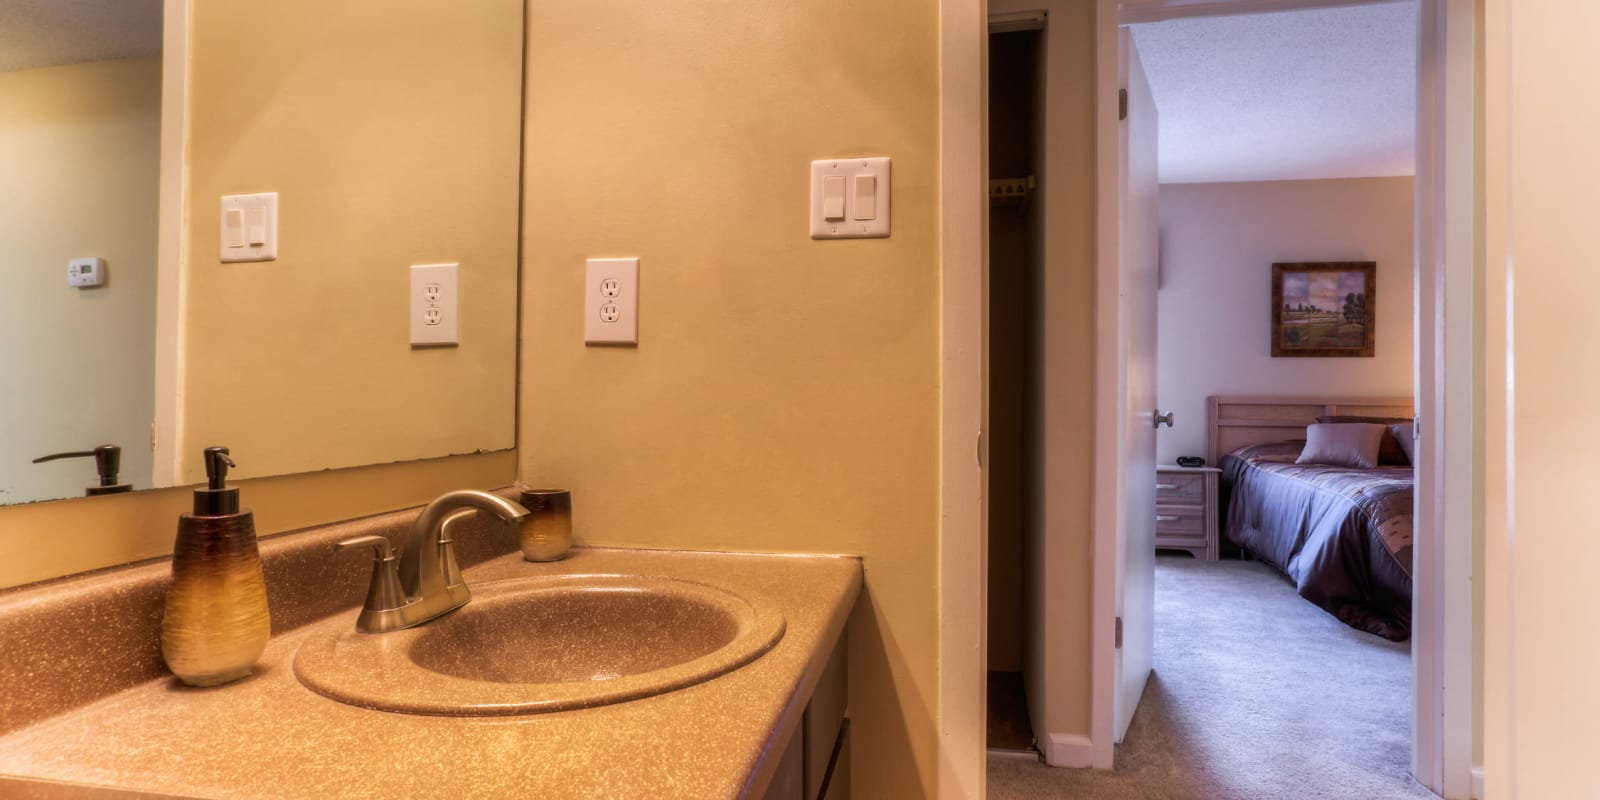 The main bathroom with a large vanity mirror at Enclave at North Point Apartment Homes in Winston Salem, North Carolina